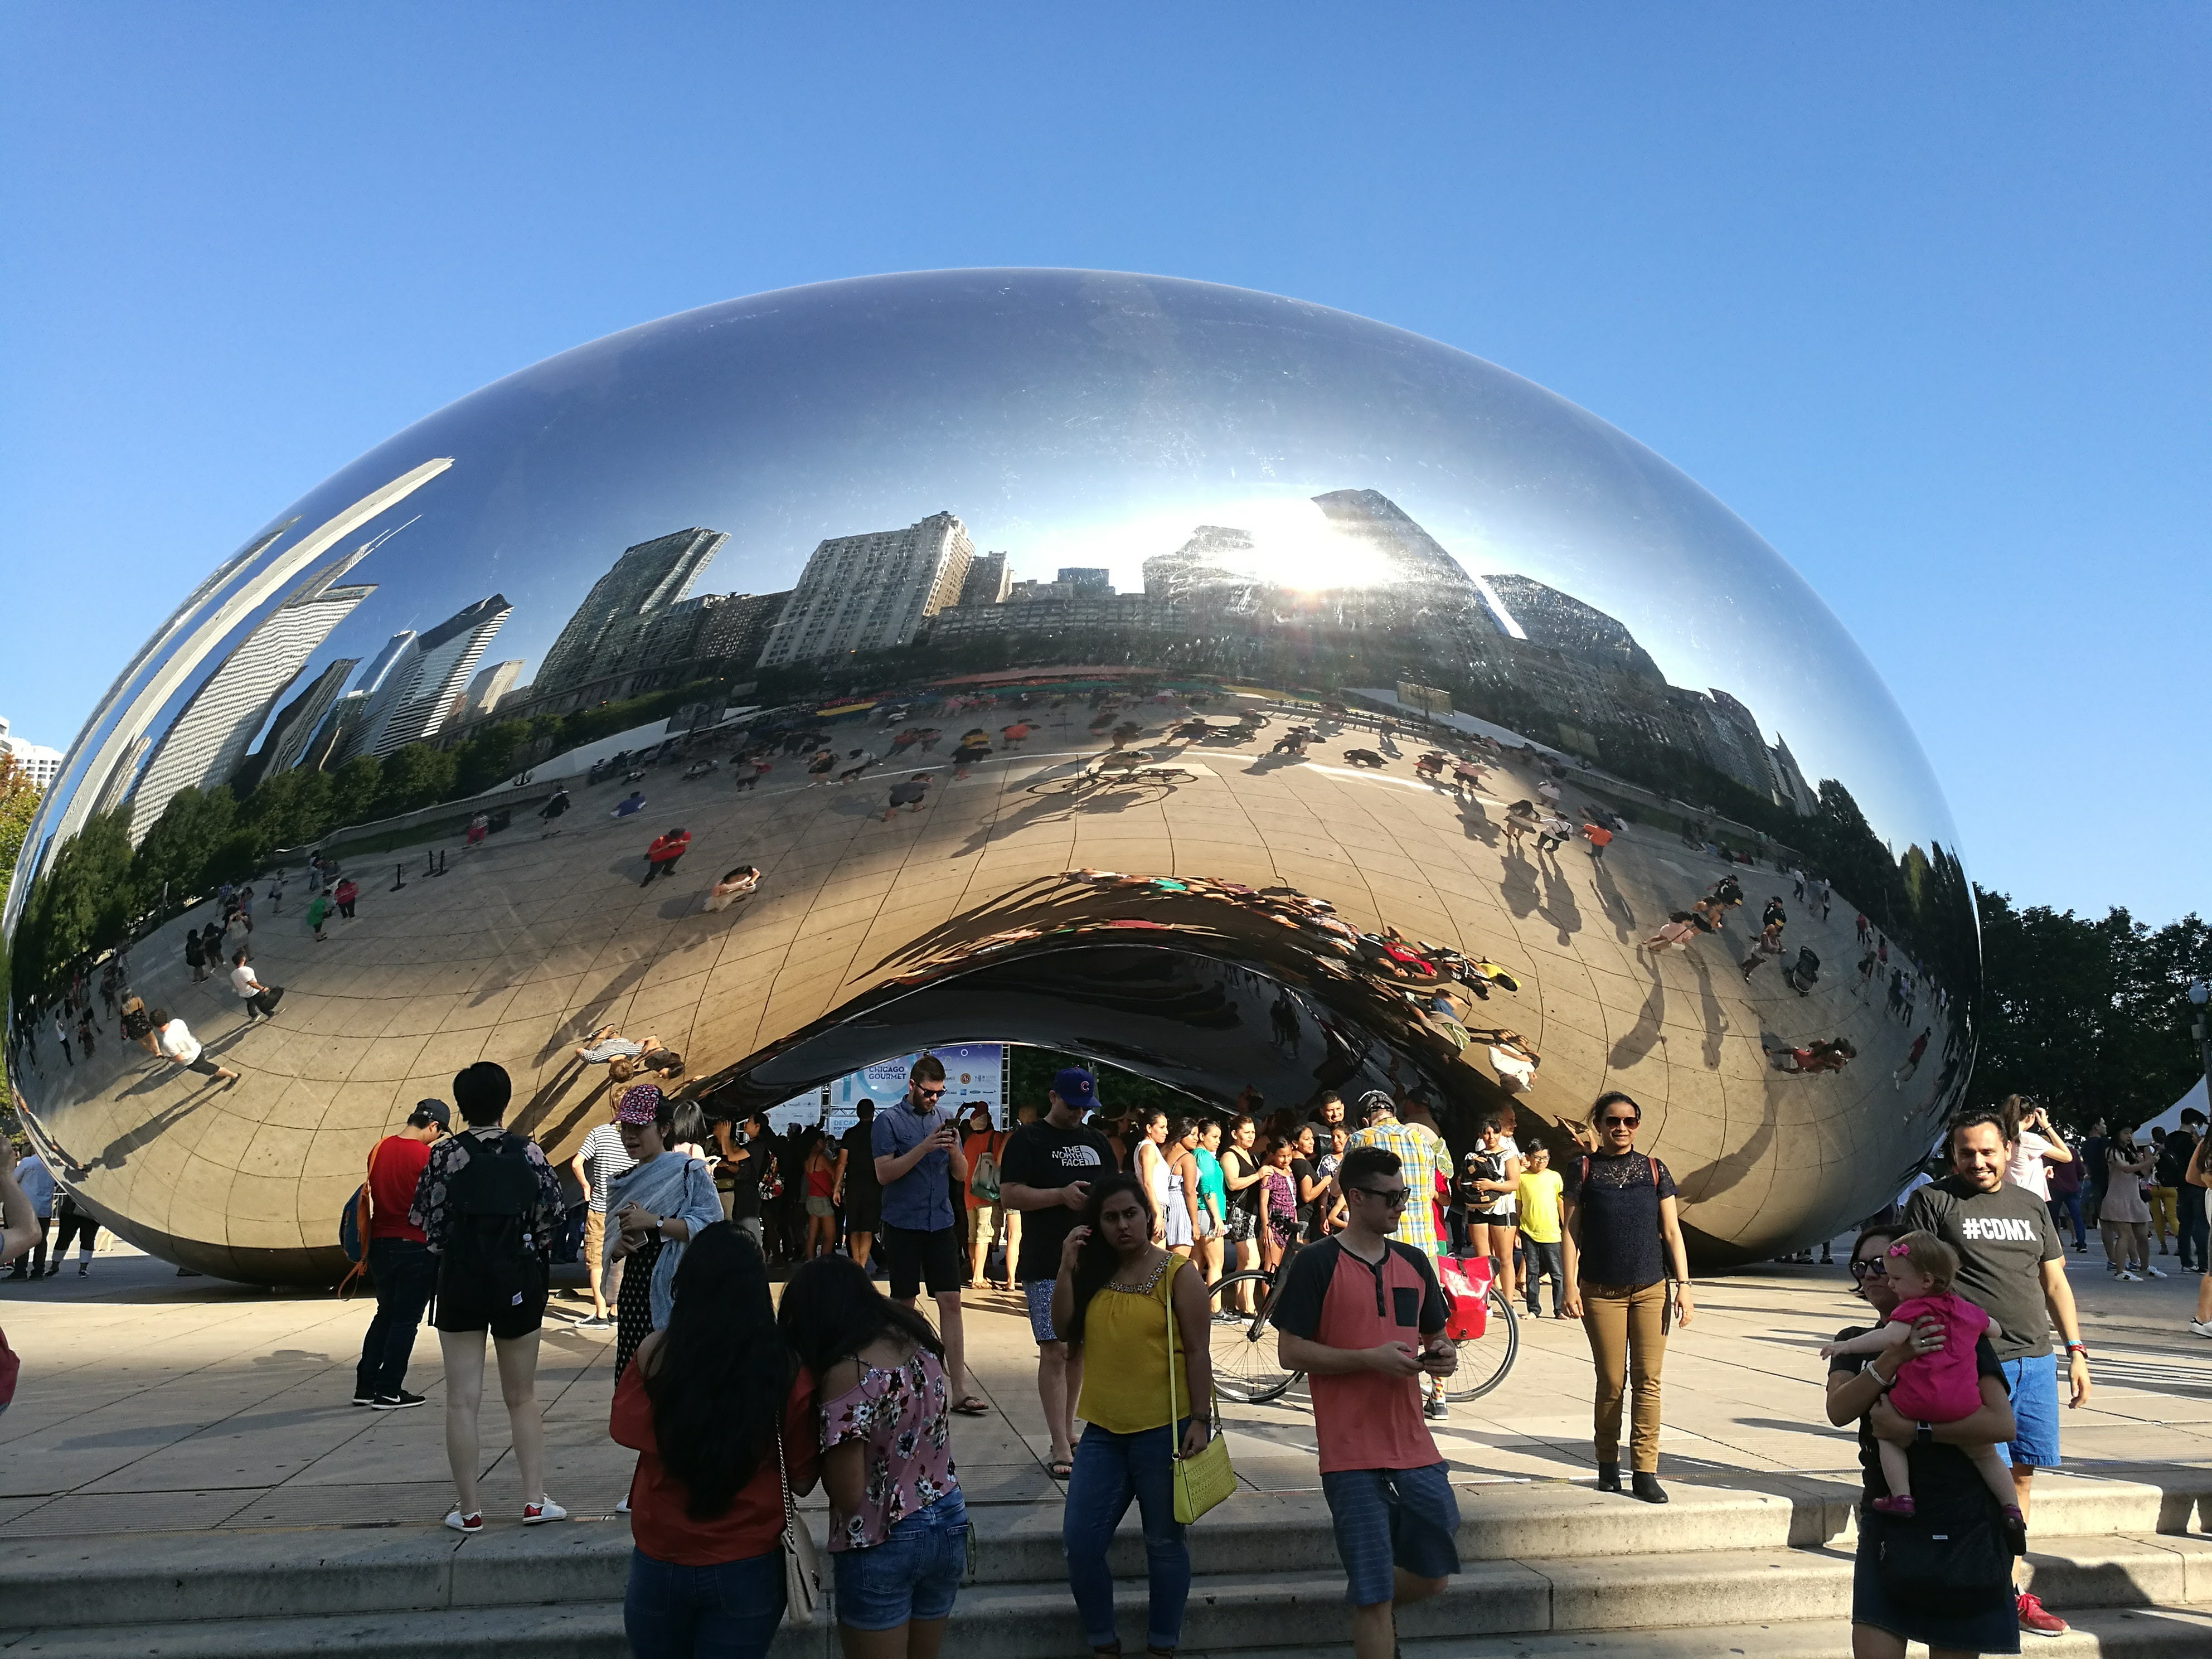 The Bean sculpture in Grant Park, Chicago